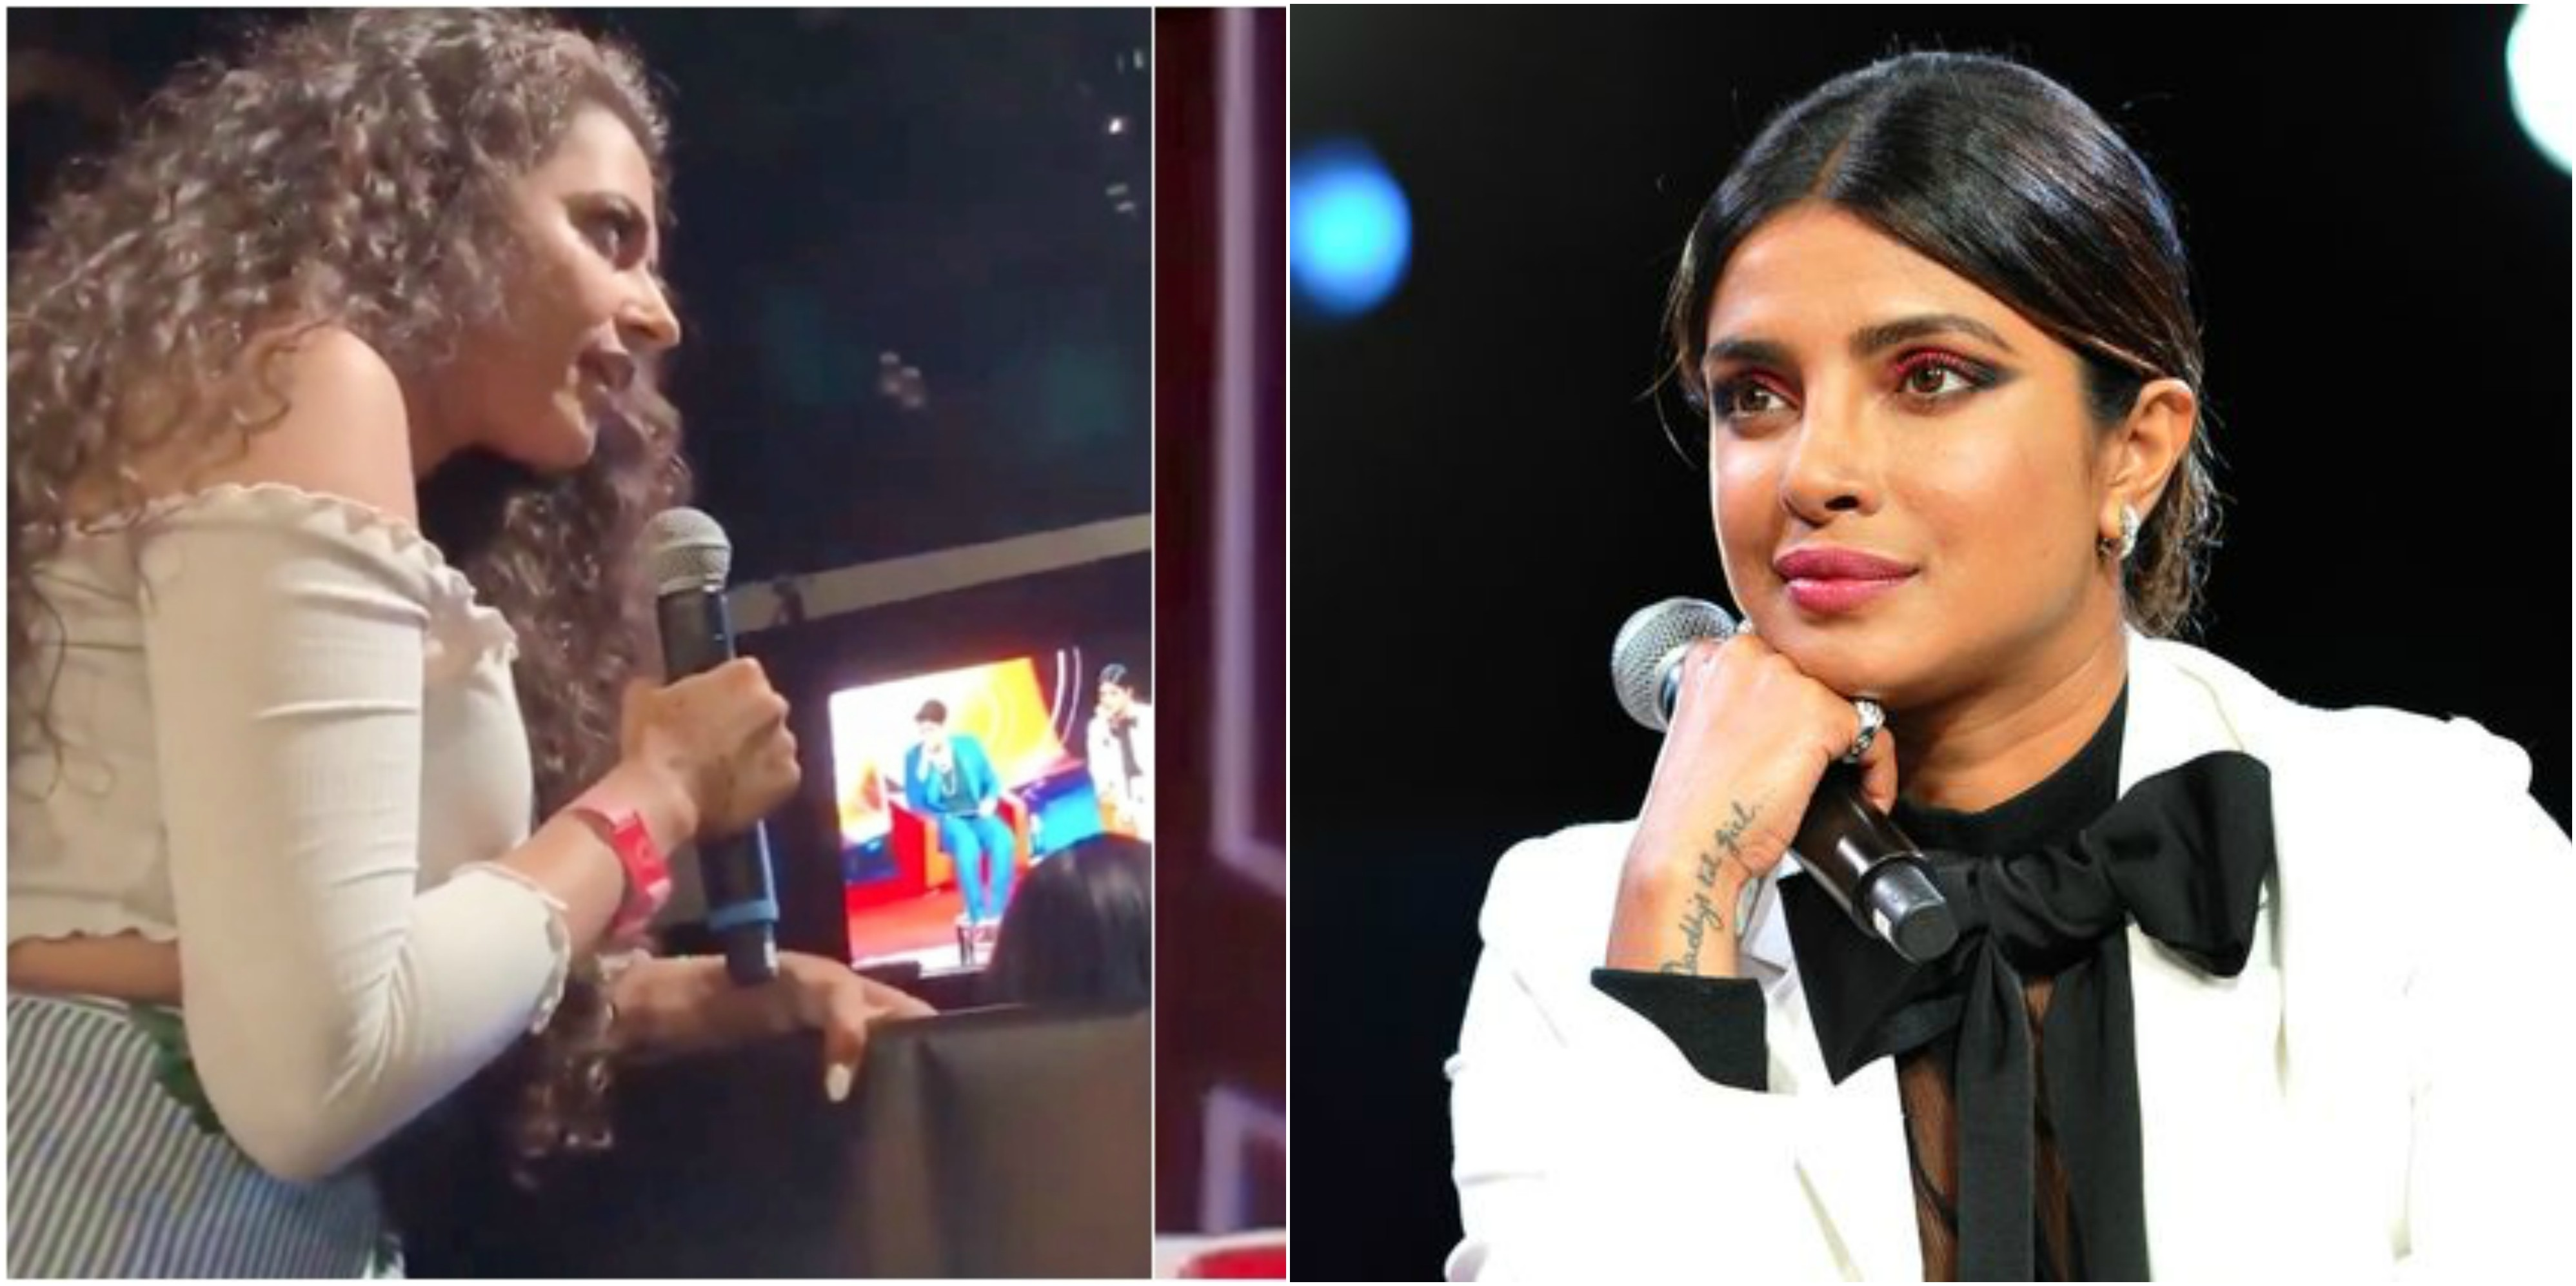 Priyanka Chopra Called Out For Her Hypocritical